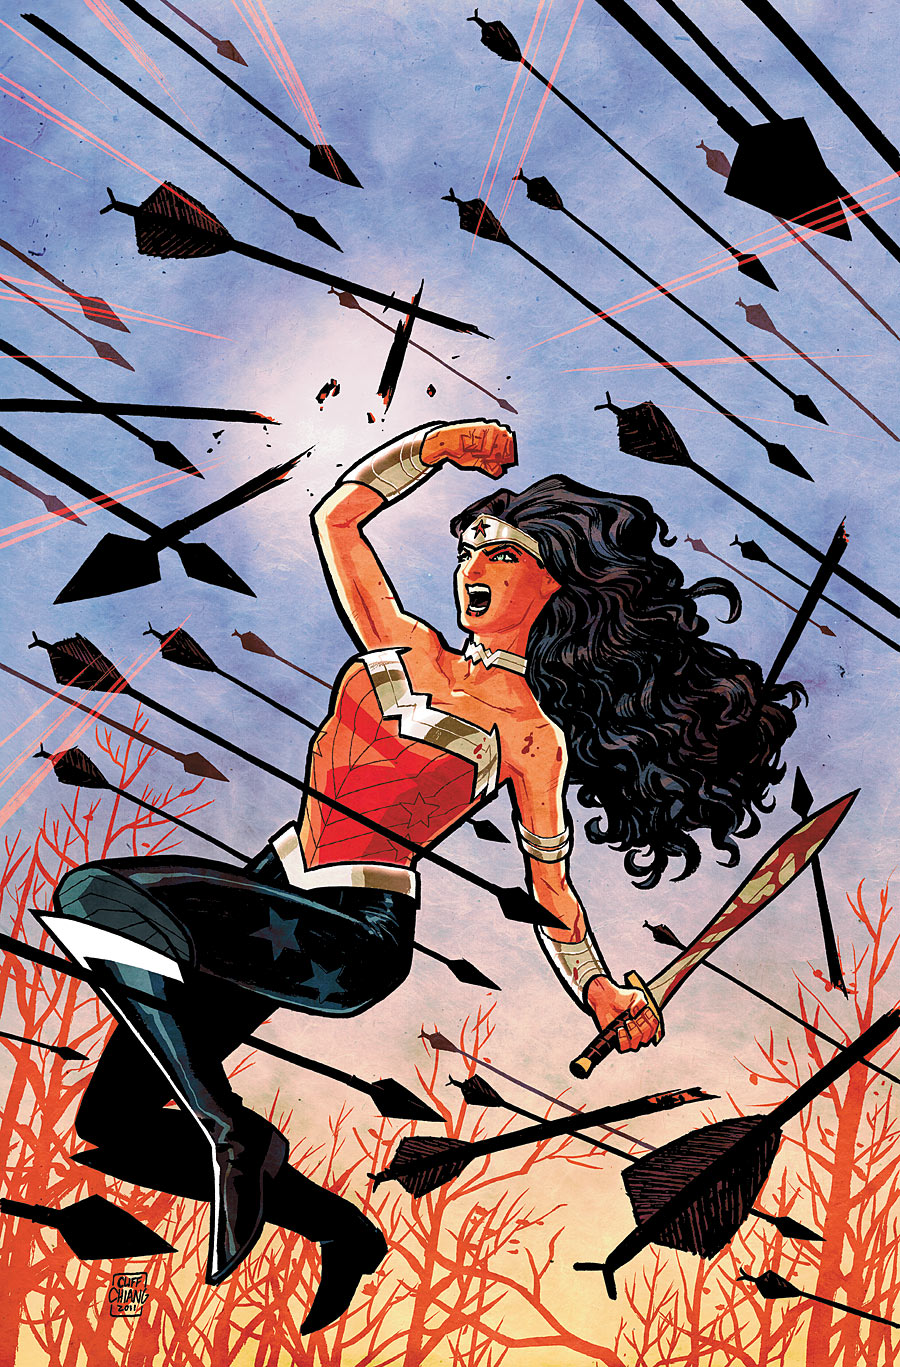 Wonder Woman Vol 4 1 Solicit.jpg